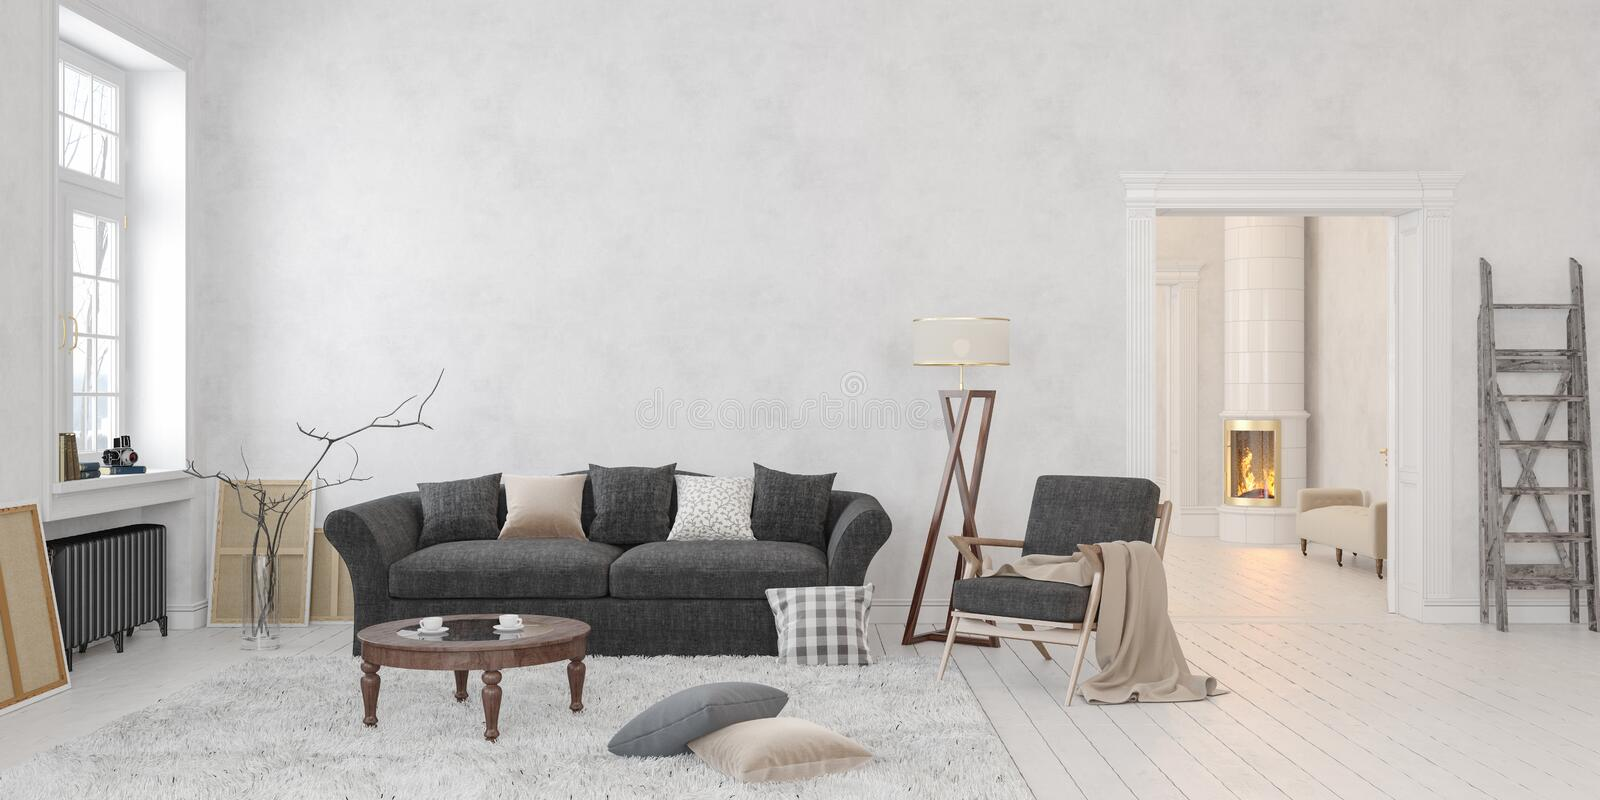 Classic scandinavian white interior with fireplace, sofa, table, lounge chair, floor lamp. stock illustration